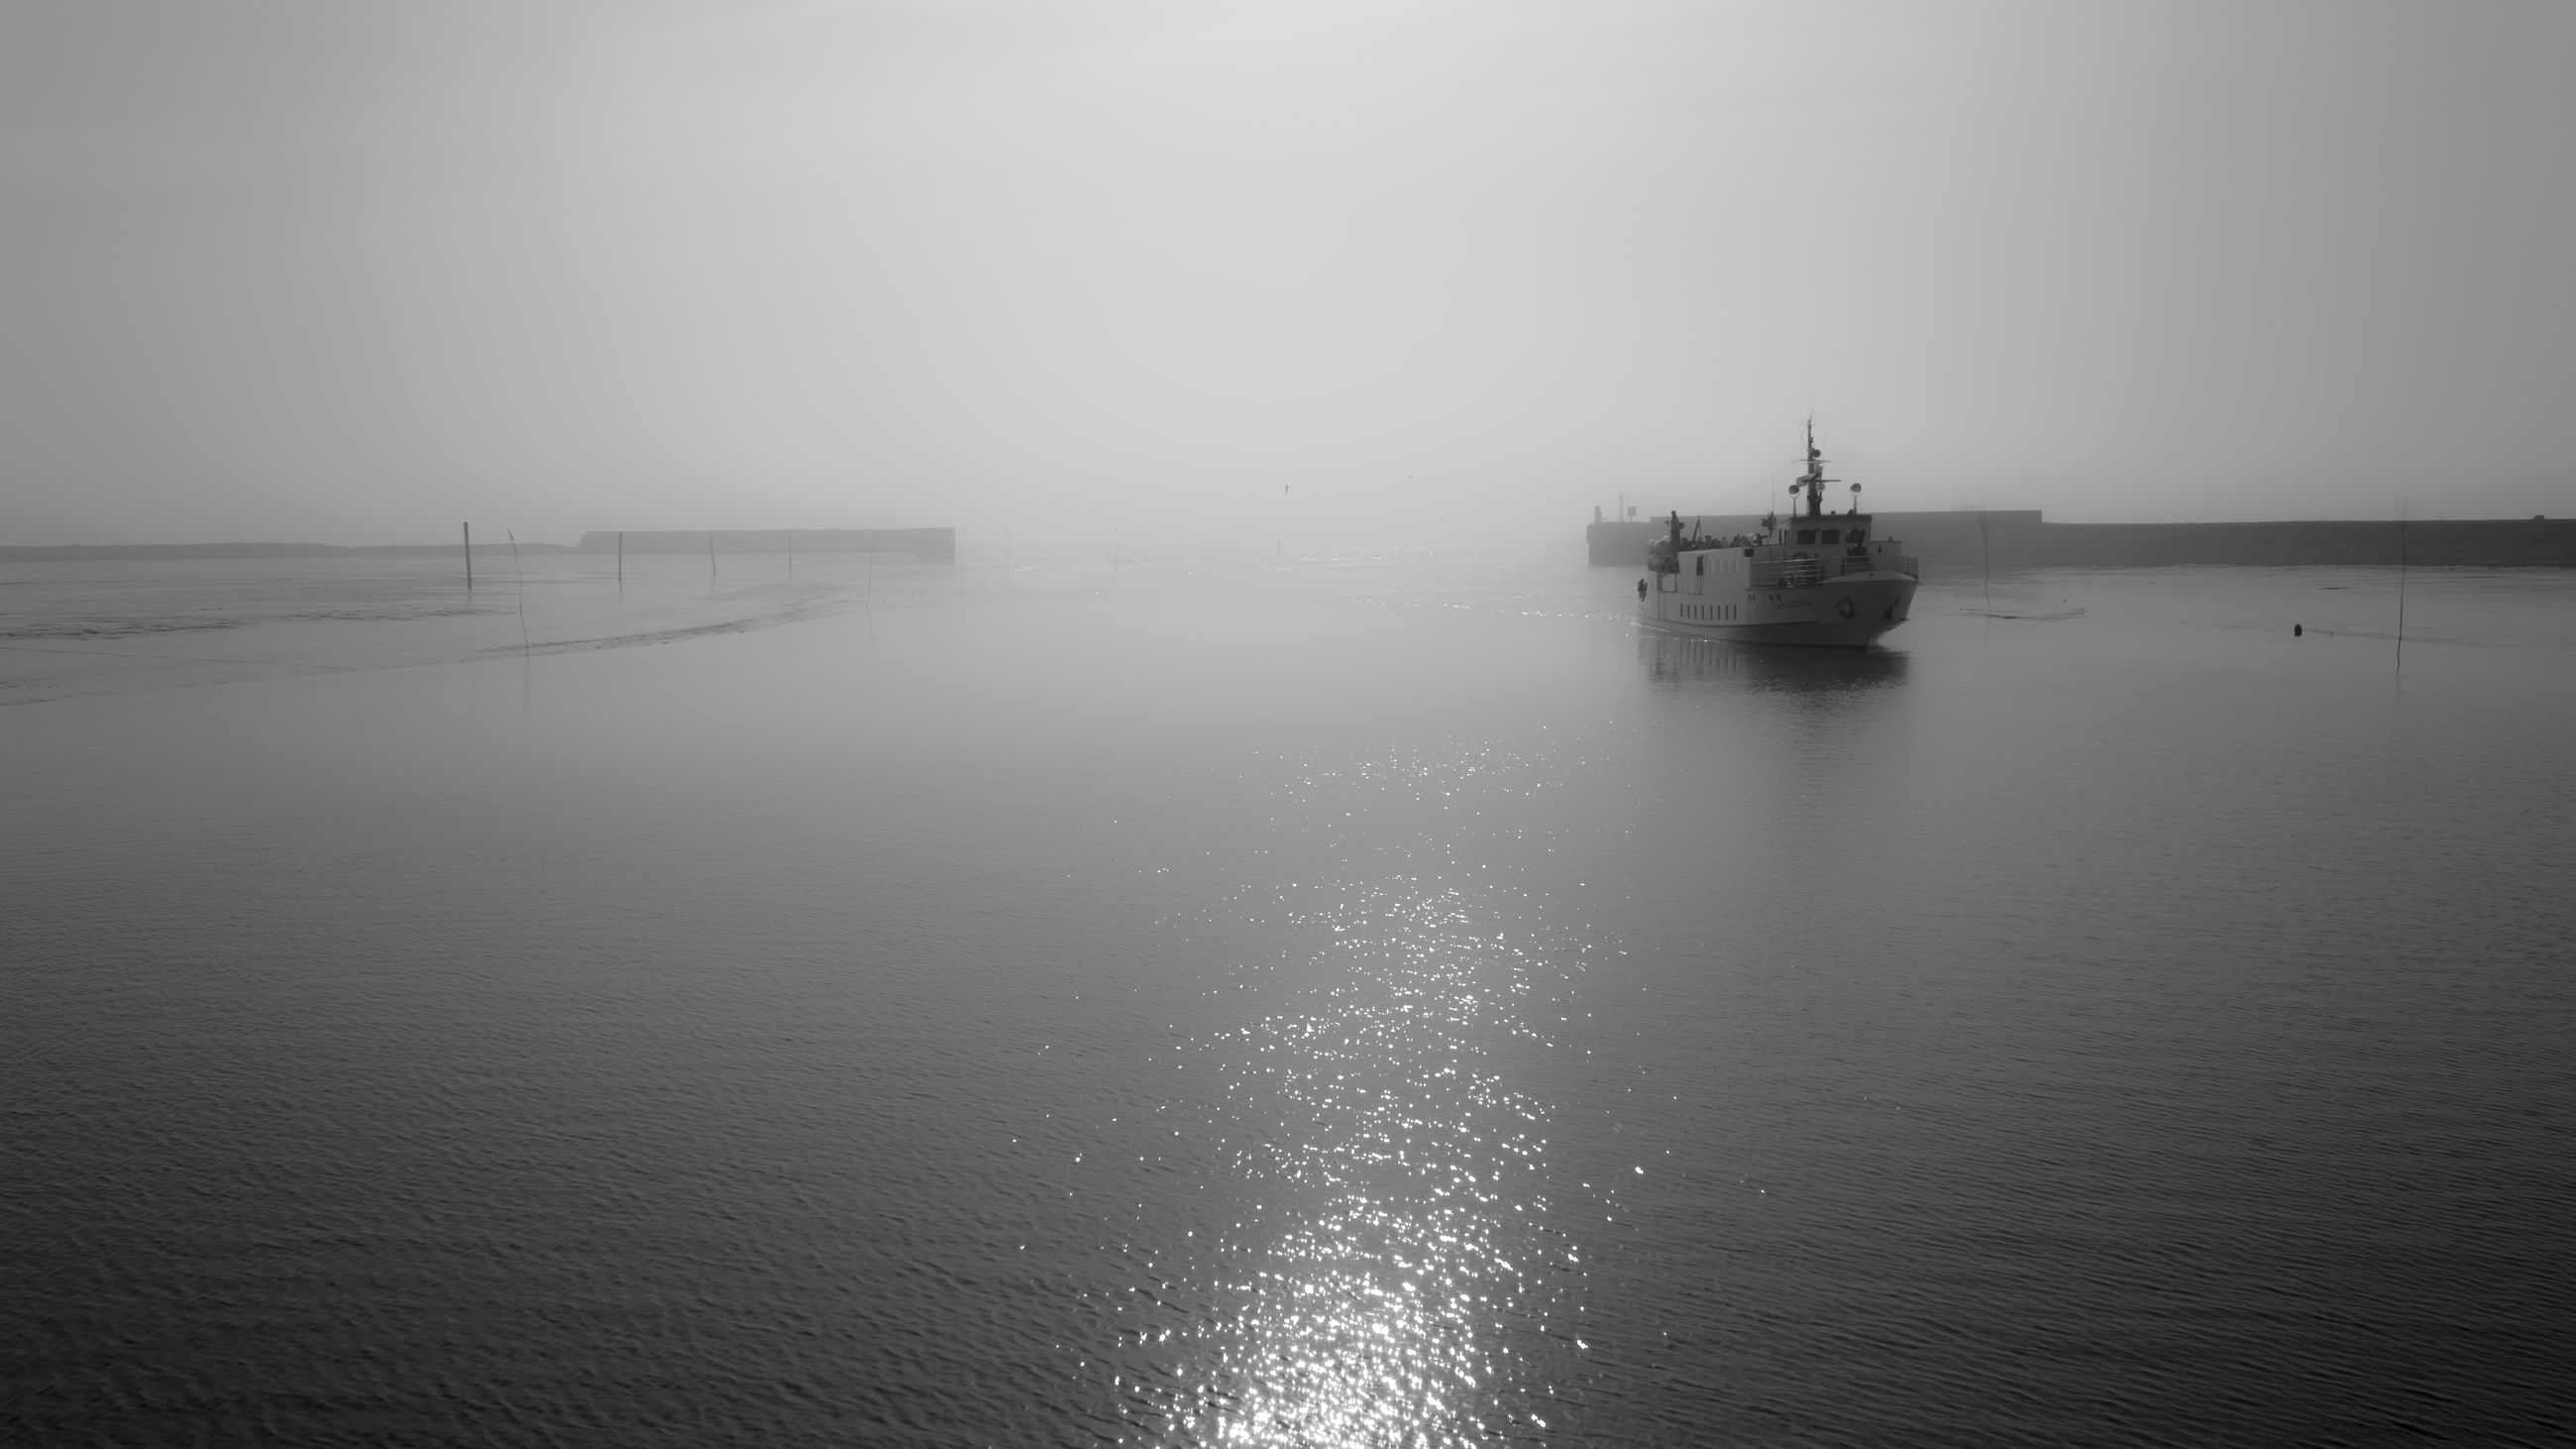 water, nautical vessel, sea, transportation, mode of transportation, sky, tranquil scene, ship, nature, no people, tranquility, waterfront, scenics - nature, beauty in nature, day, outdoors, fog, horizon over water, passenger craft